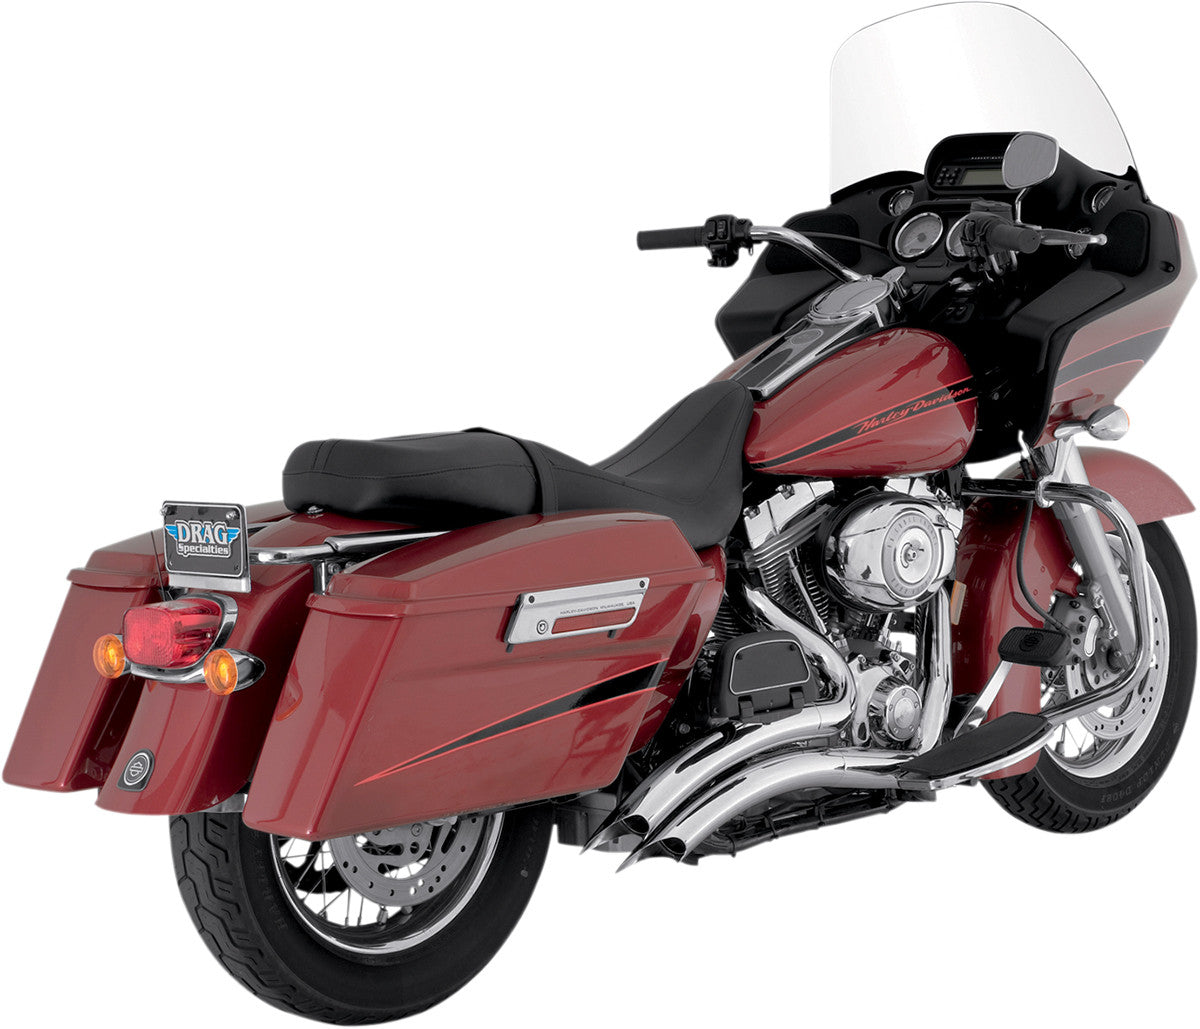 VANCE & HINES BIG RADIUS, CHROME(for 99-06 FLHT, FLHR, FLHX, FLTR)